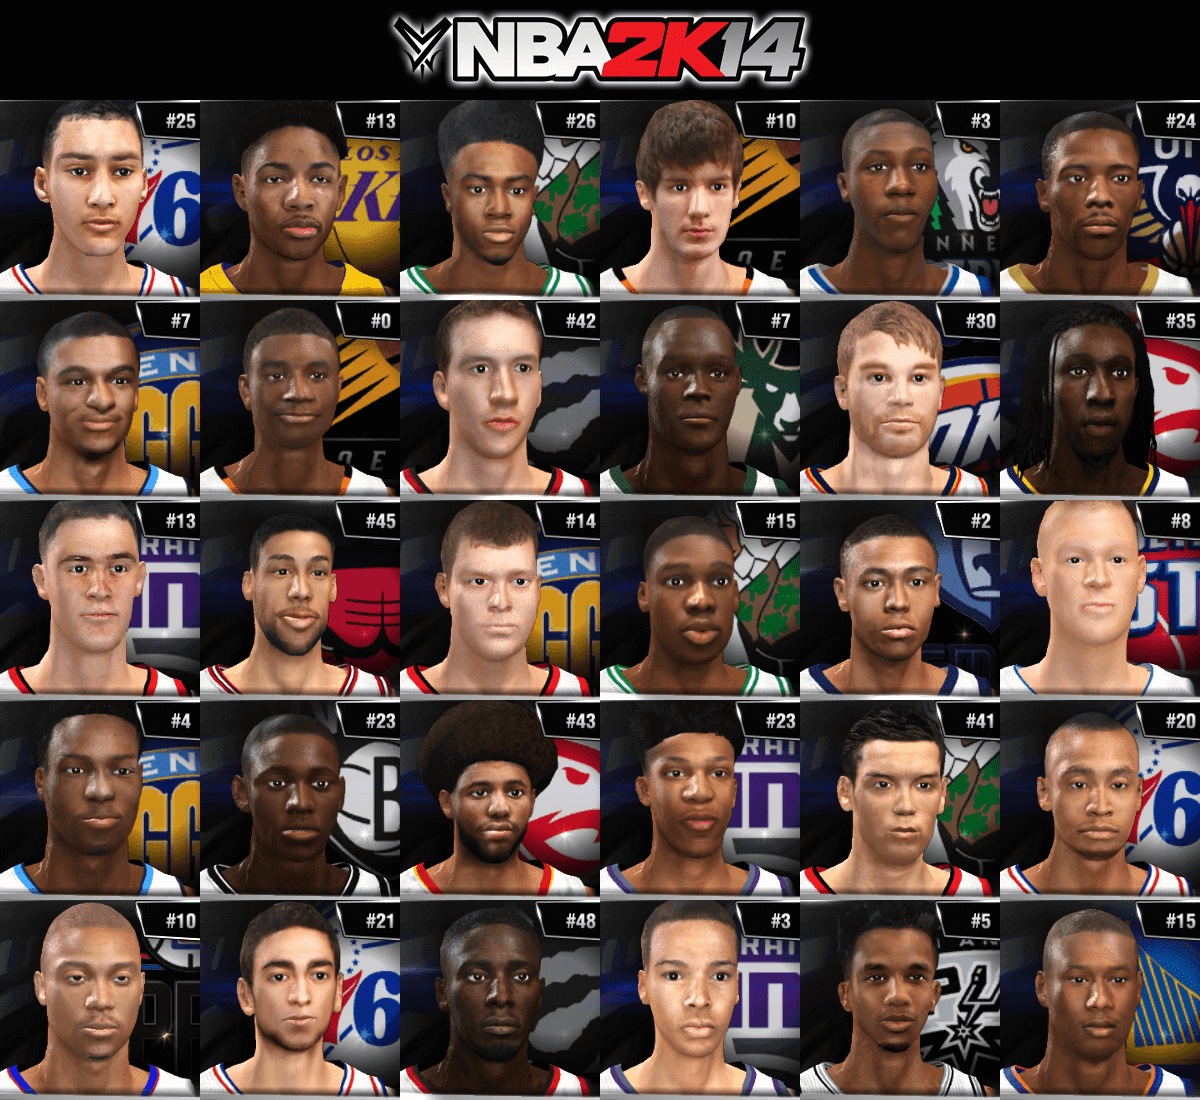 NBA 2k14 2017 Roster Mods Updates Downloads - HoopsVilla com